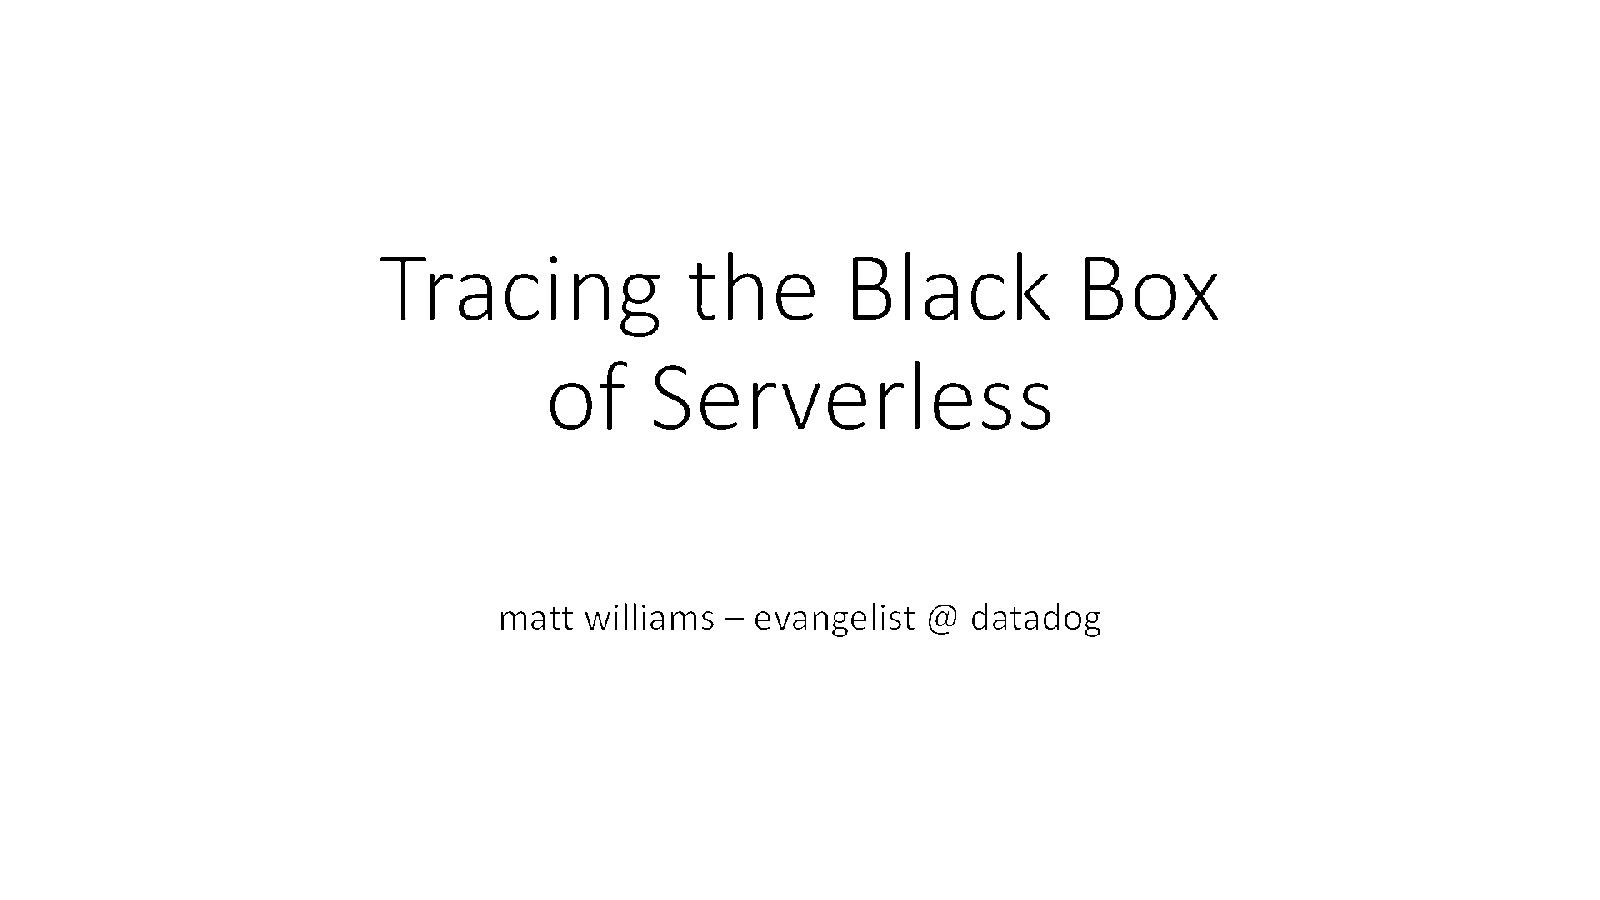 Tracing the Black Box of Serverless